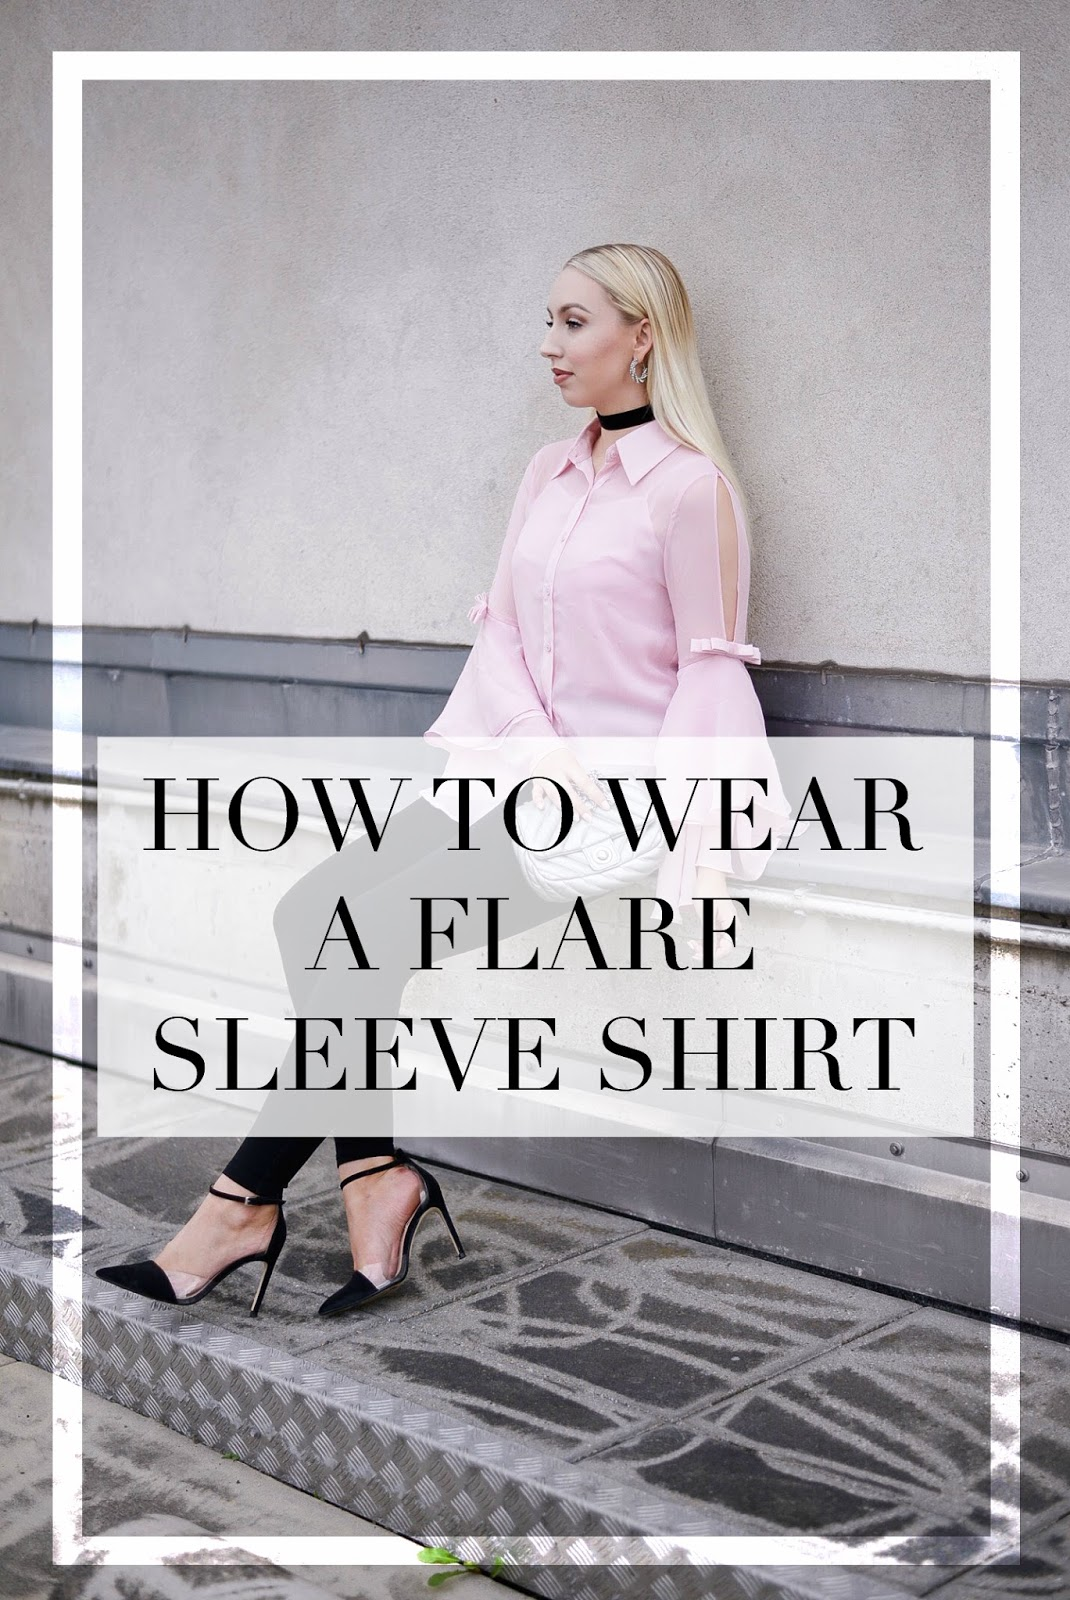 flare sleeve shirt